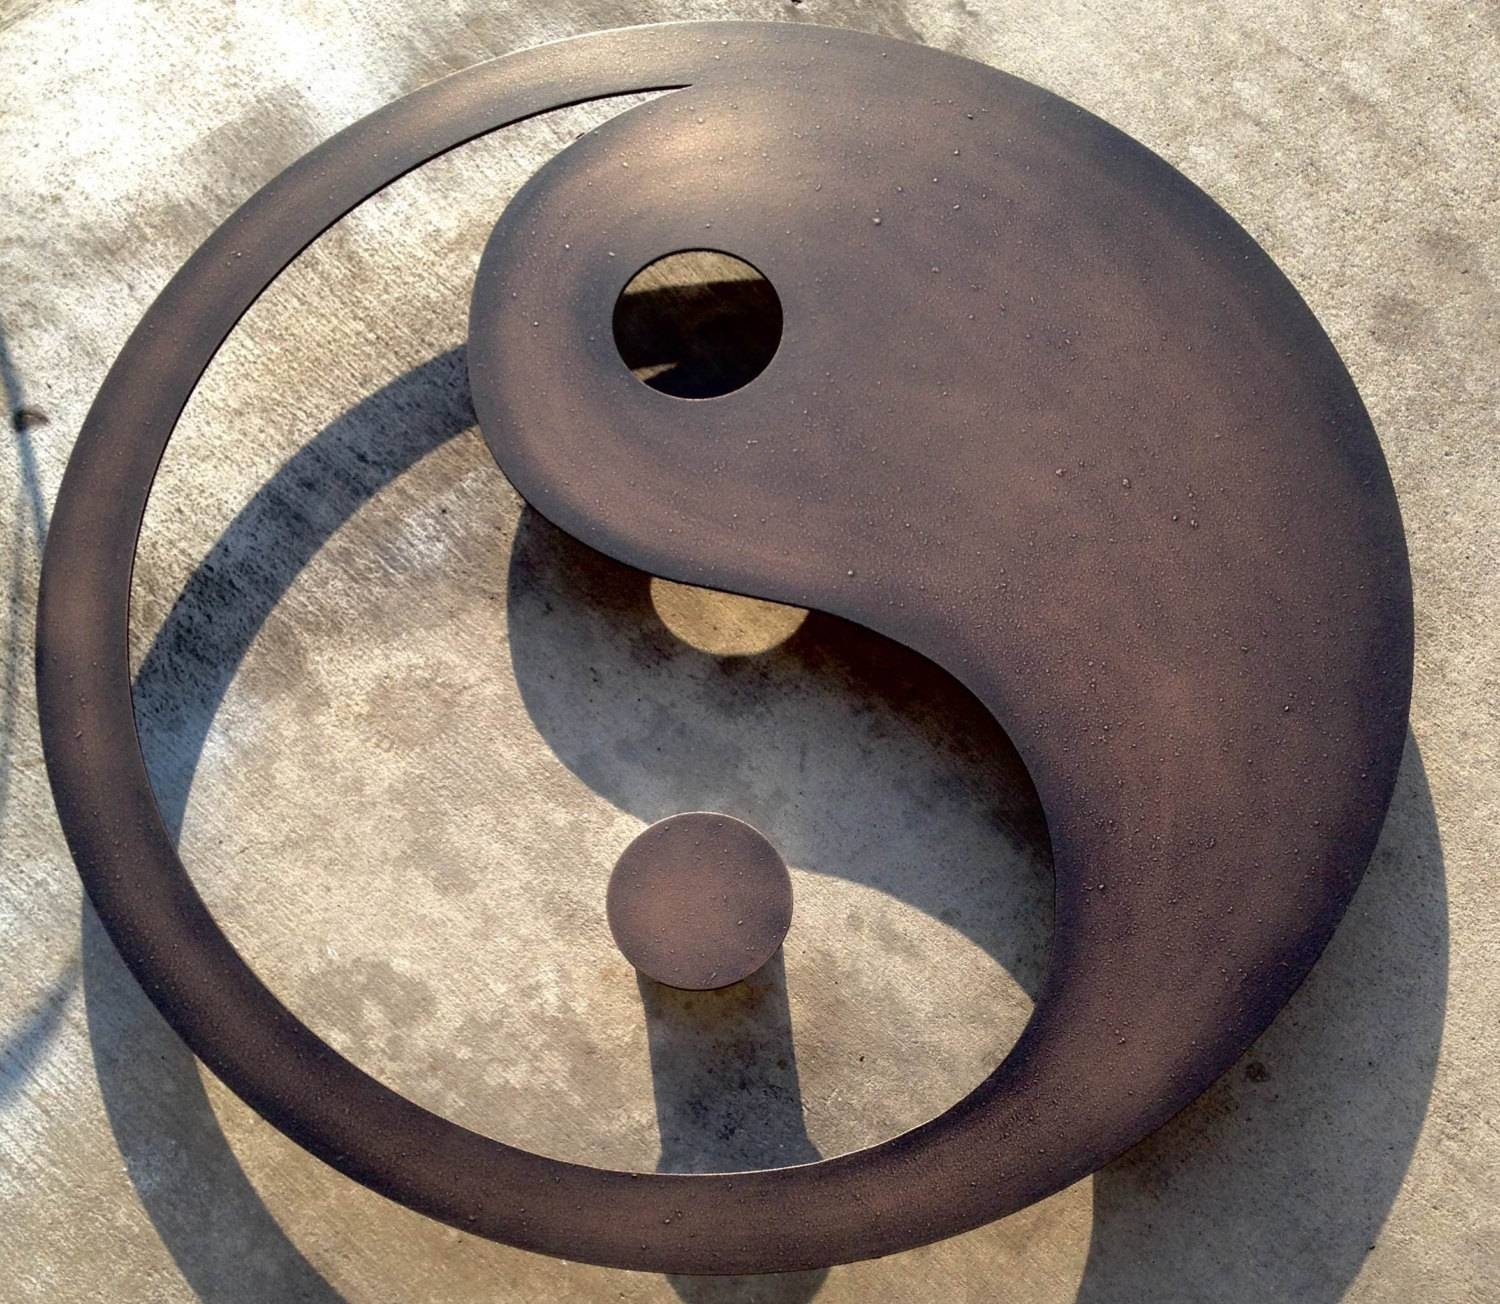 Metal Wall Art For The Home Or Officeinspiremetals On Etsy With Most Recently Released Yin Yang Wall Art (View 14 of 30)